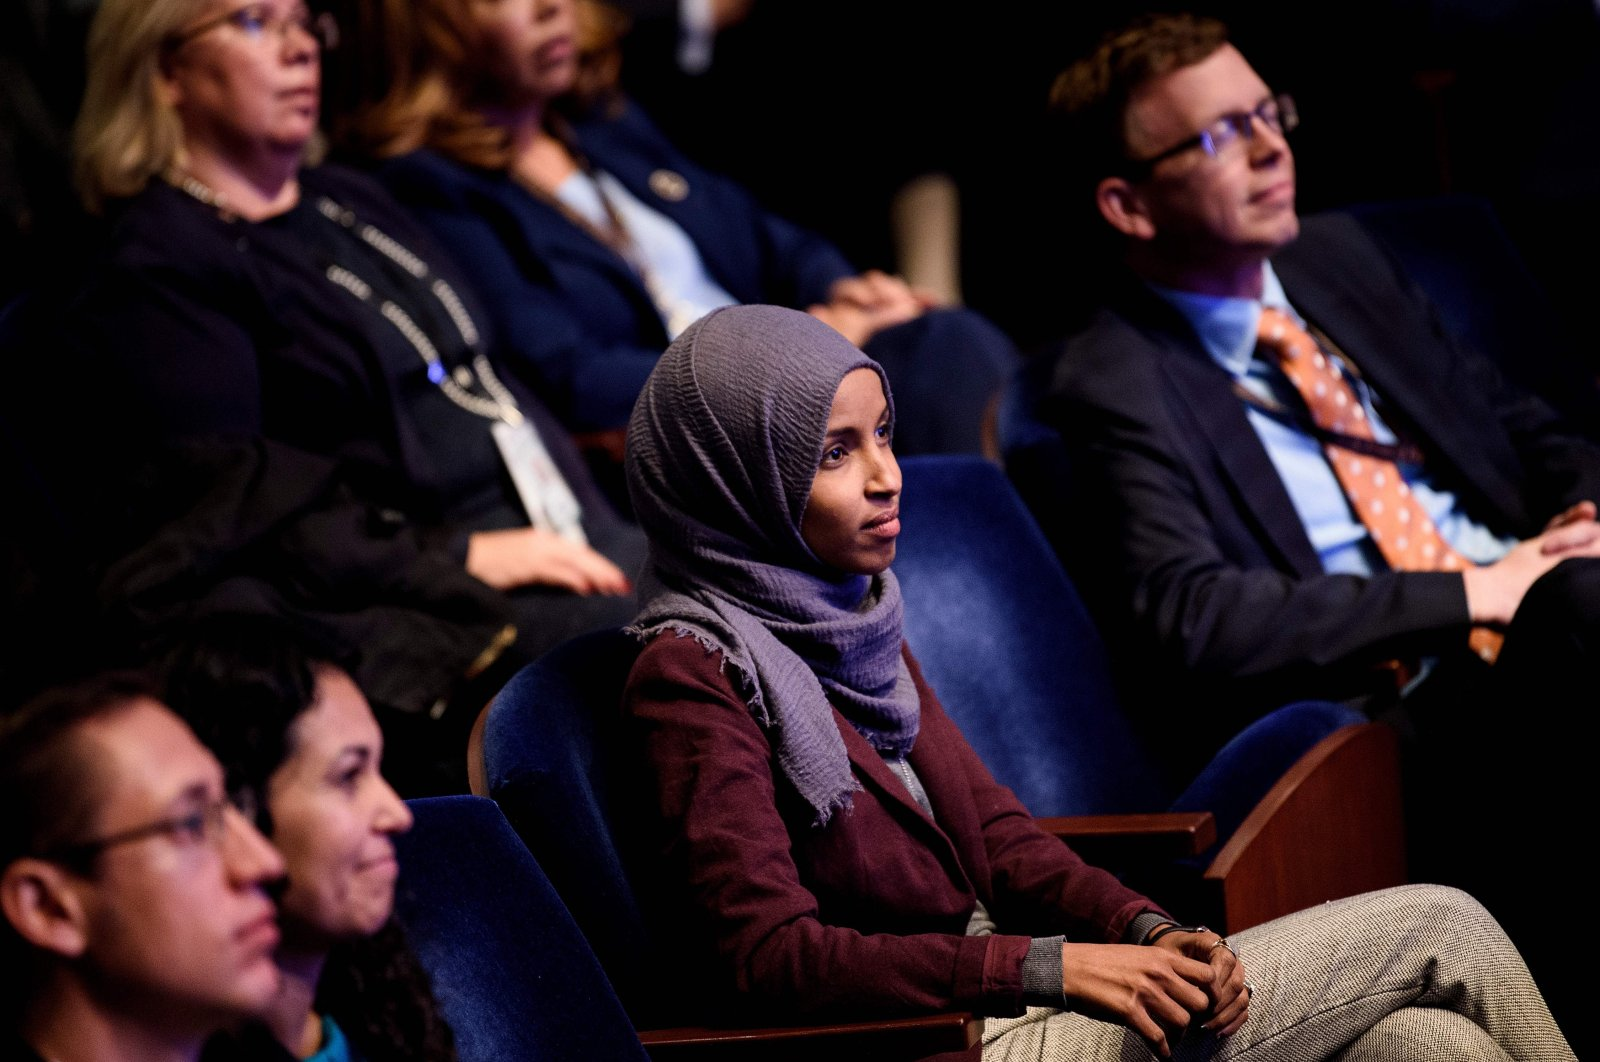 U.S. Rep. Ilhan Omar and others attend a House of Representatives member-elect welcome briefing on Capitol Hill, Washington, D.C., U.S., Nov. 15, 2018. (AFP Photo)